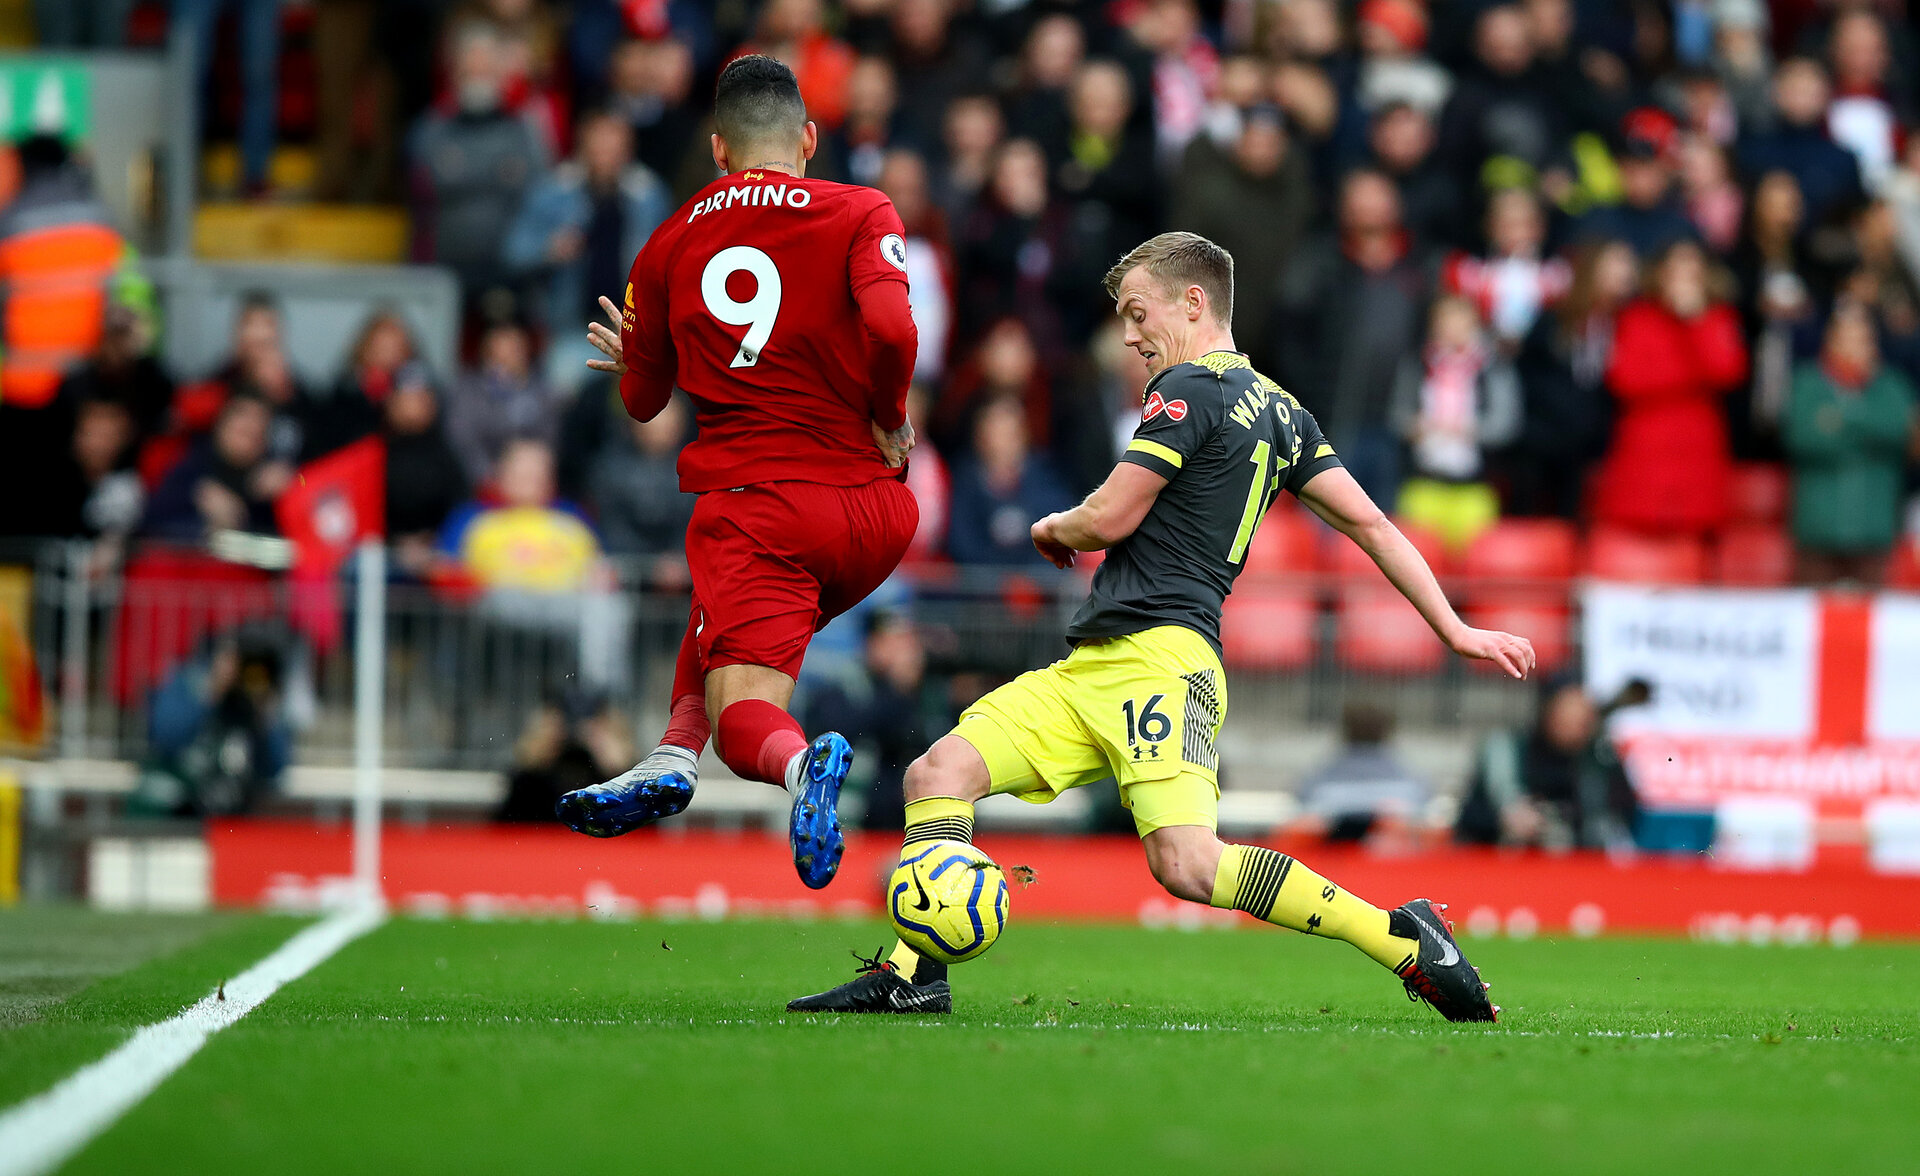 LIVERPOOL, ENGLAND - FEBRUARY 01: Roberto Firminho(L) of Liverpool is tackled by James Ward-Prowse of Southampton during the Premier League match between Liverpool FC and Southampton FC at Anfield on February 01, 2020 in Liverpool, United Kingdom. (Photo by Matt Watson/Southampton FC via Getty Images)